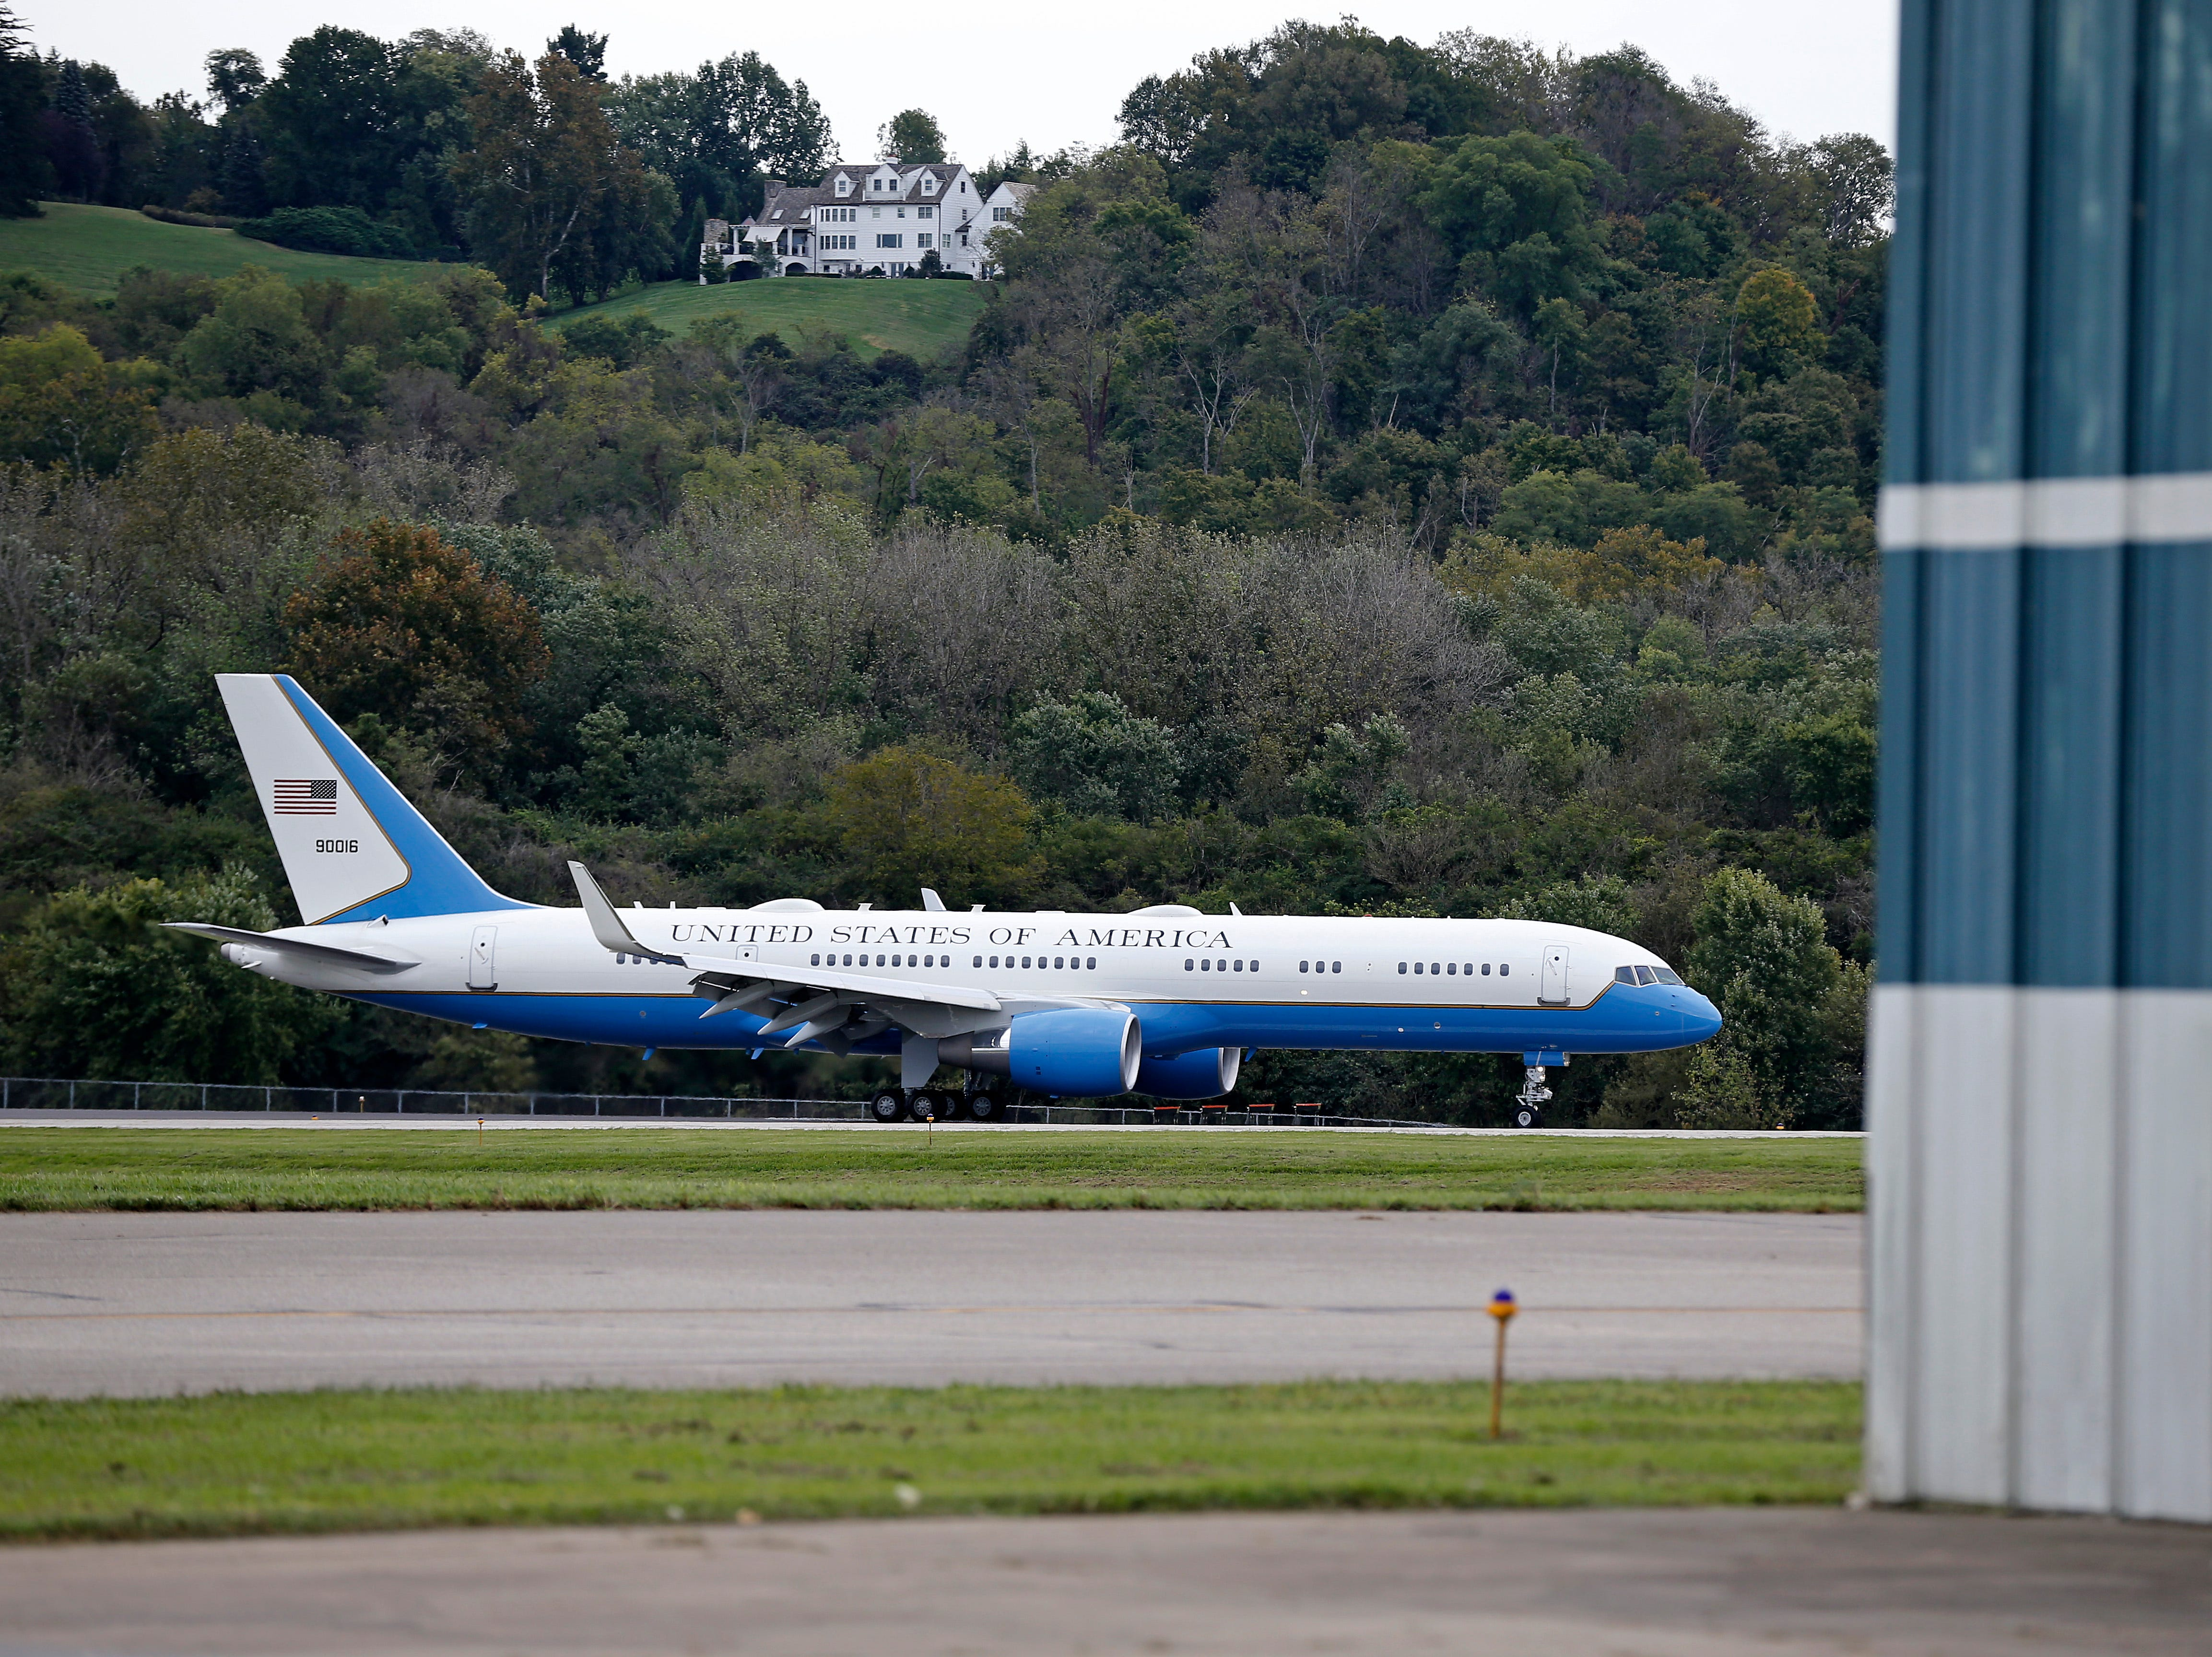 Air Force One taxis after landing at Lunken Airport in Cincinnati on Friday, Oct. 12, 2018. President Trump visited the Cincinnati area for a MAGA Rally at the Warren County Fair Grounds in Lebanon, Ohio, Friday night.